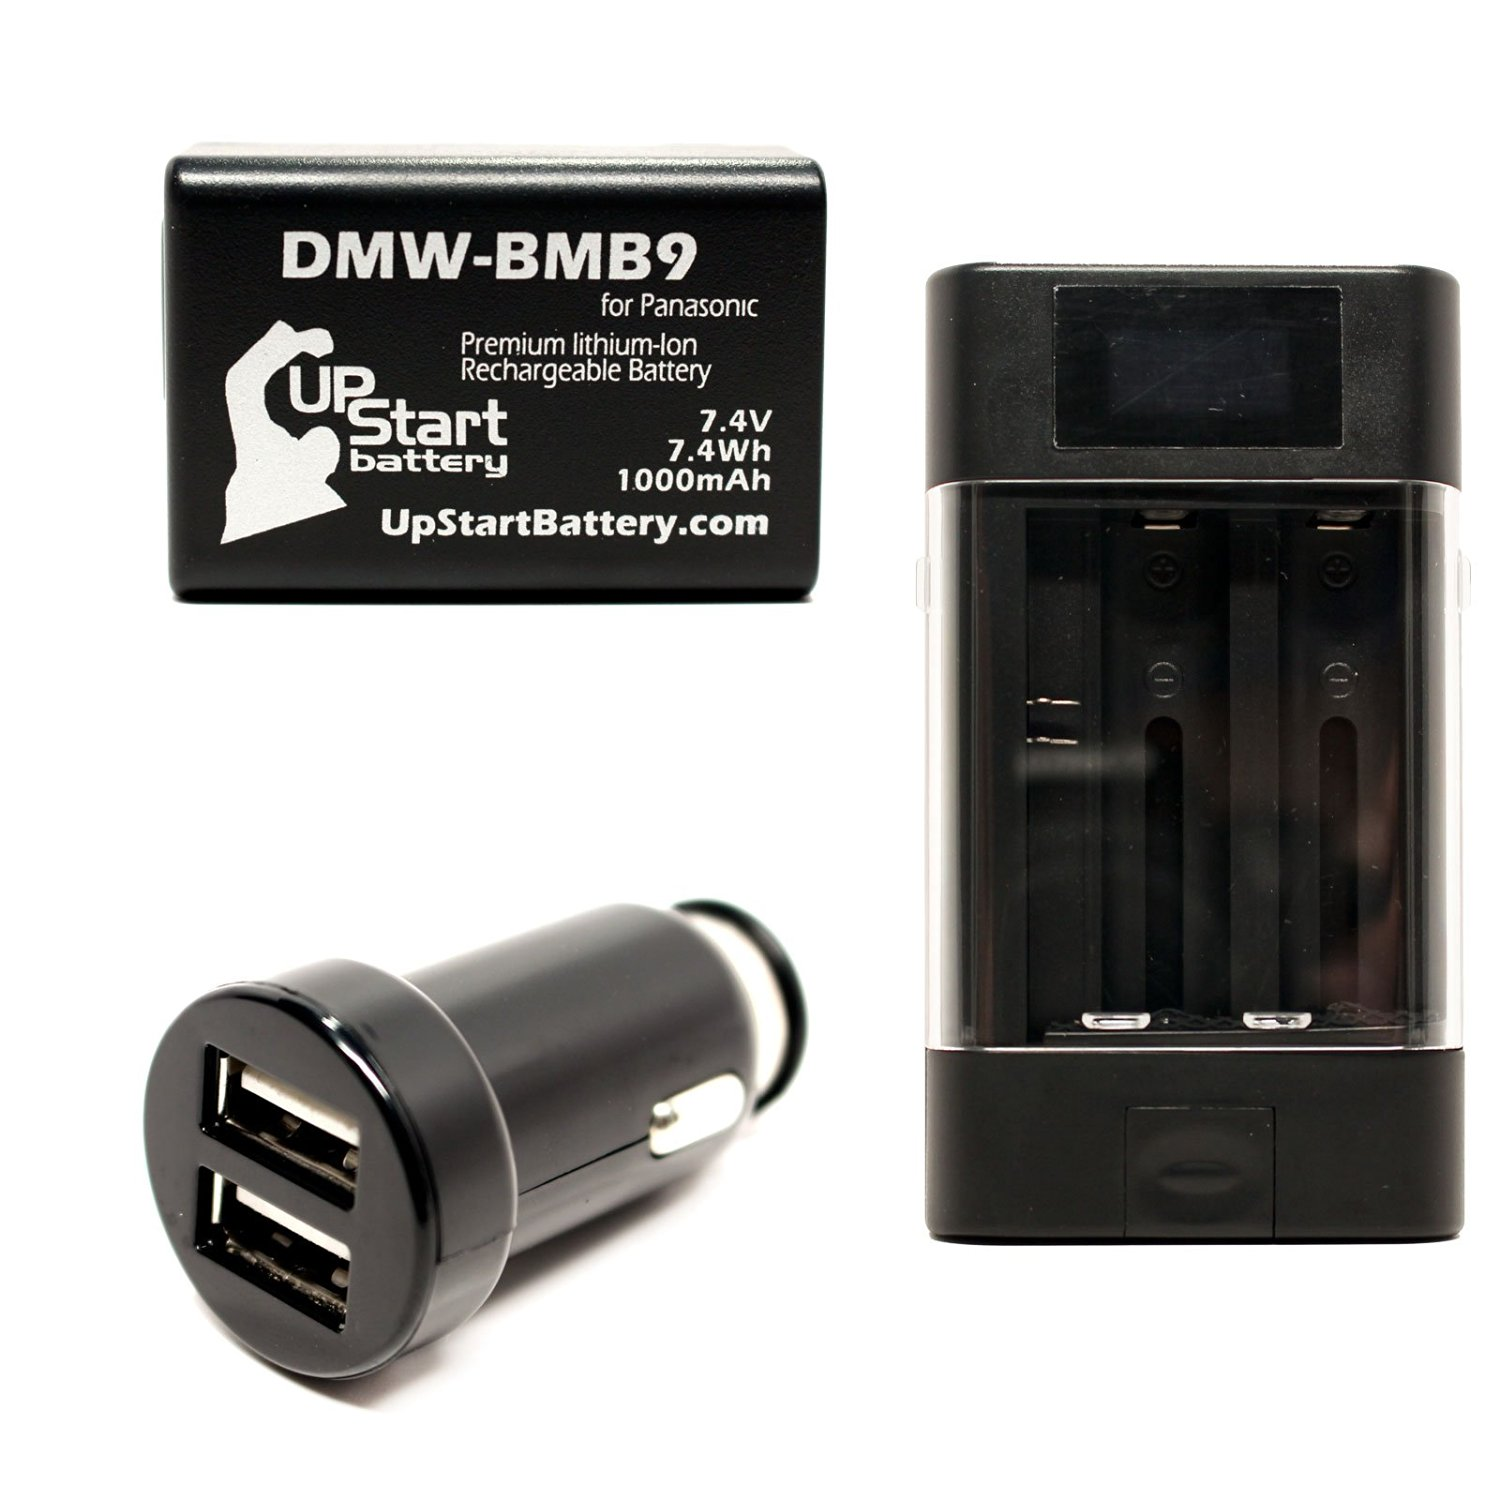 Panasonic Lumix DMC-FZ70 Battery with Universal Charger and Dual USB Car Charger - Replacement Panasonic DMW-BMB9 Digital Camera Battery and Charger